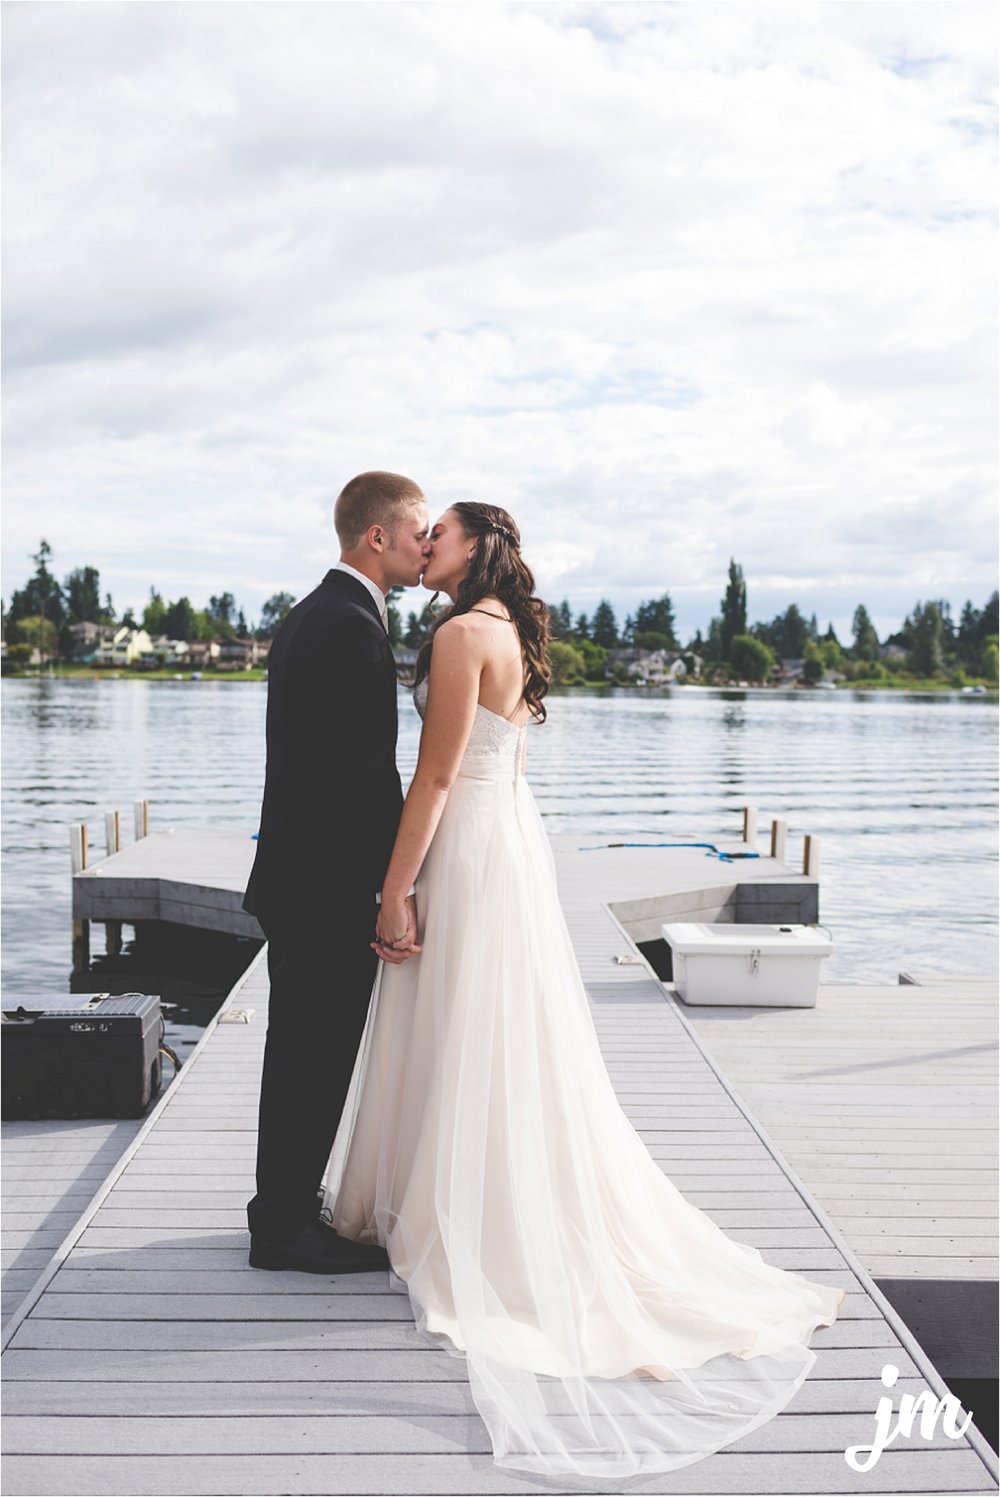 jannicka-mayte-intimate-backyard-lake-wedding-kent-wa-pacific-northwest-wedding-photographer_0016.jpg